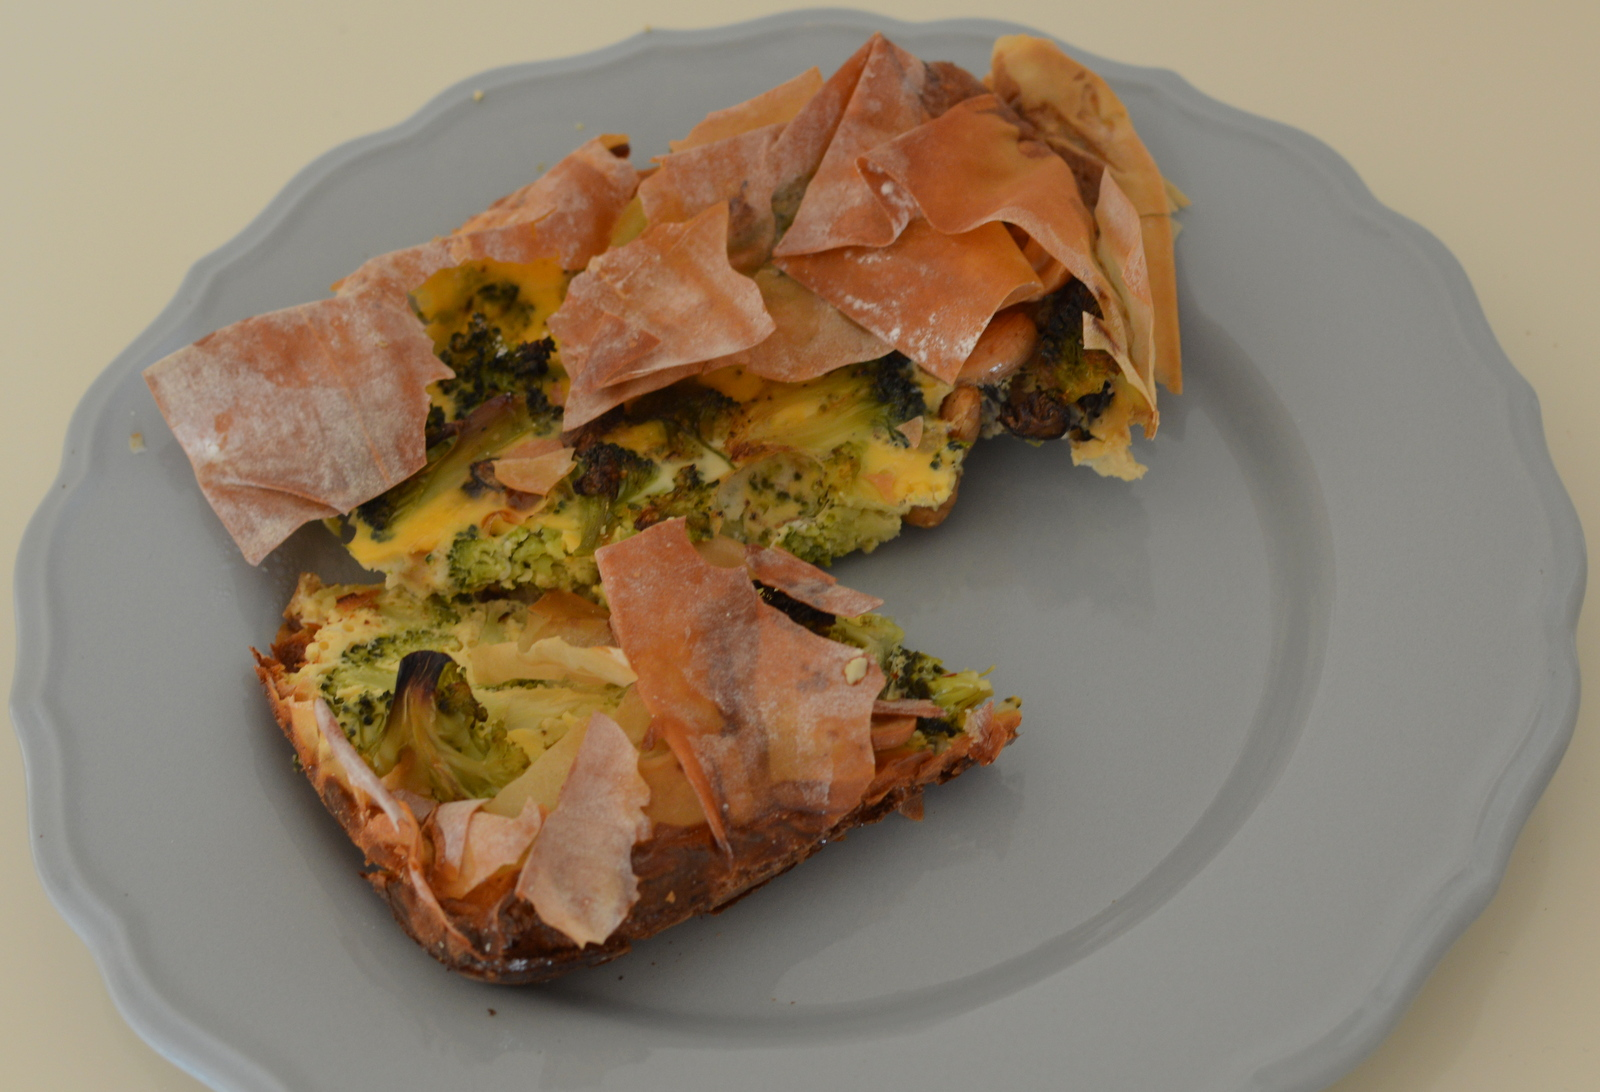 Oosterse quiche met broccoli